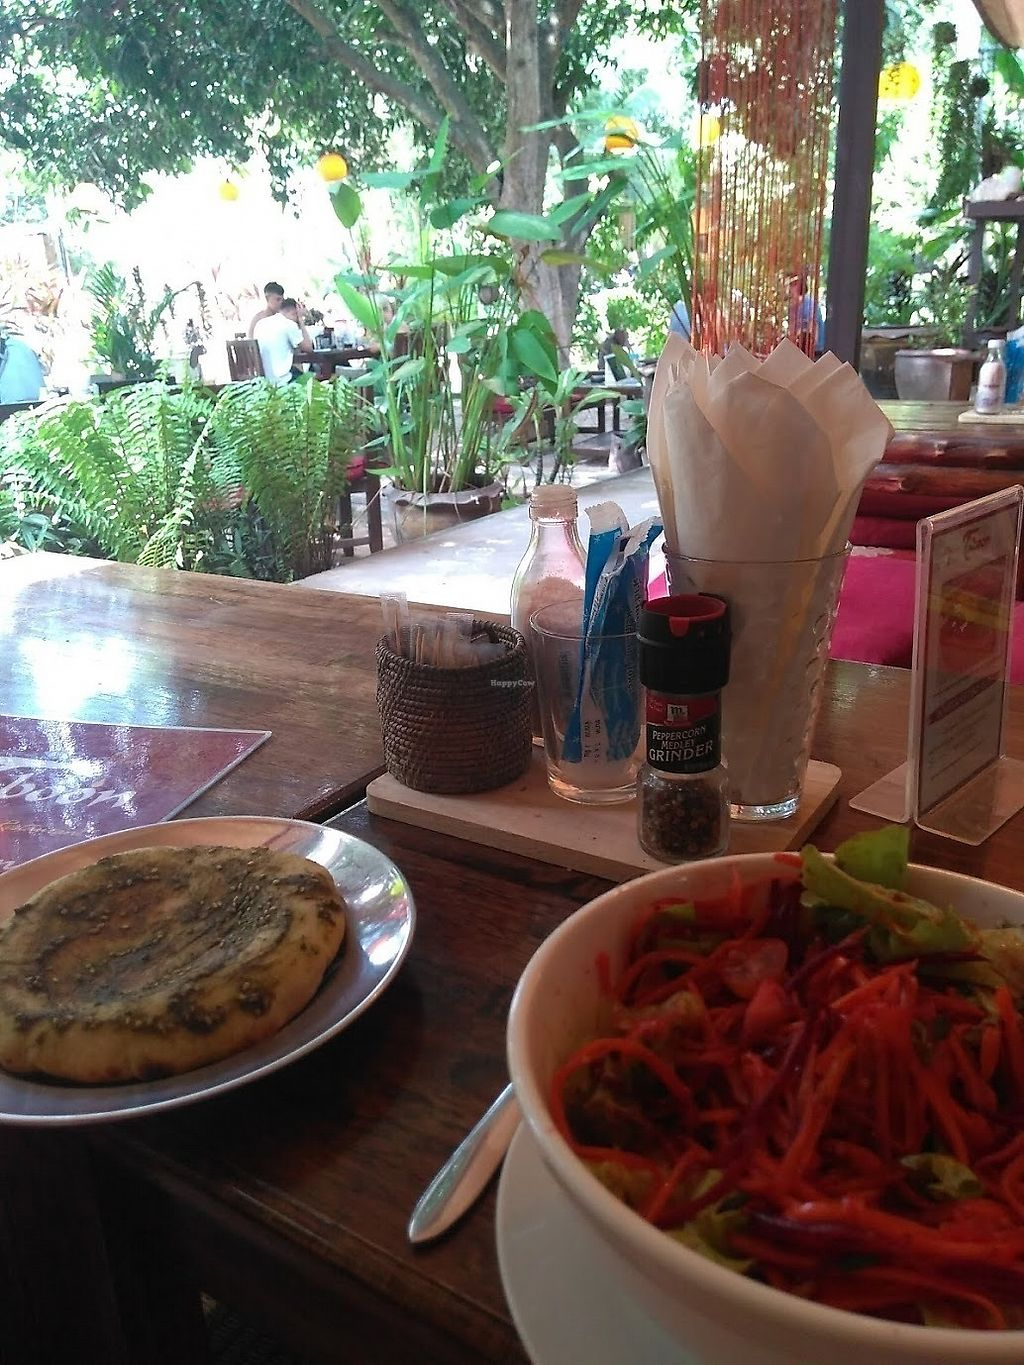 """Photo of Taboon  by <a href=""""/members/profile/GinJan"""">GinJan</a> <br/>Very good food <br/> January 6, 2018  - <a href='/contact/abuse/image/71037/343574'>Report</a>"""